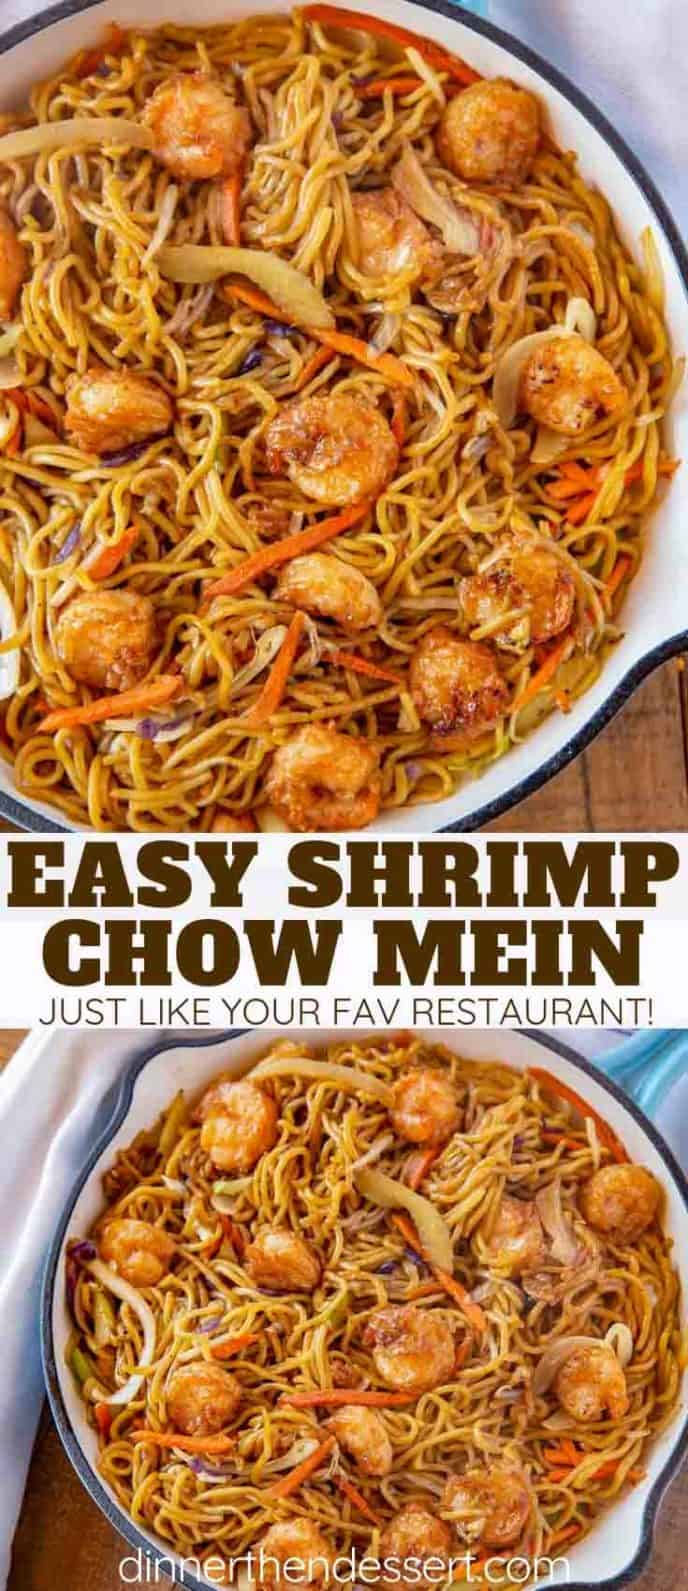 Chow Mein made with Shrimp